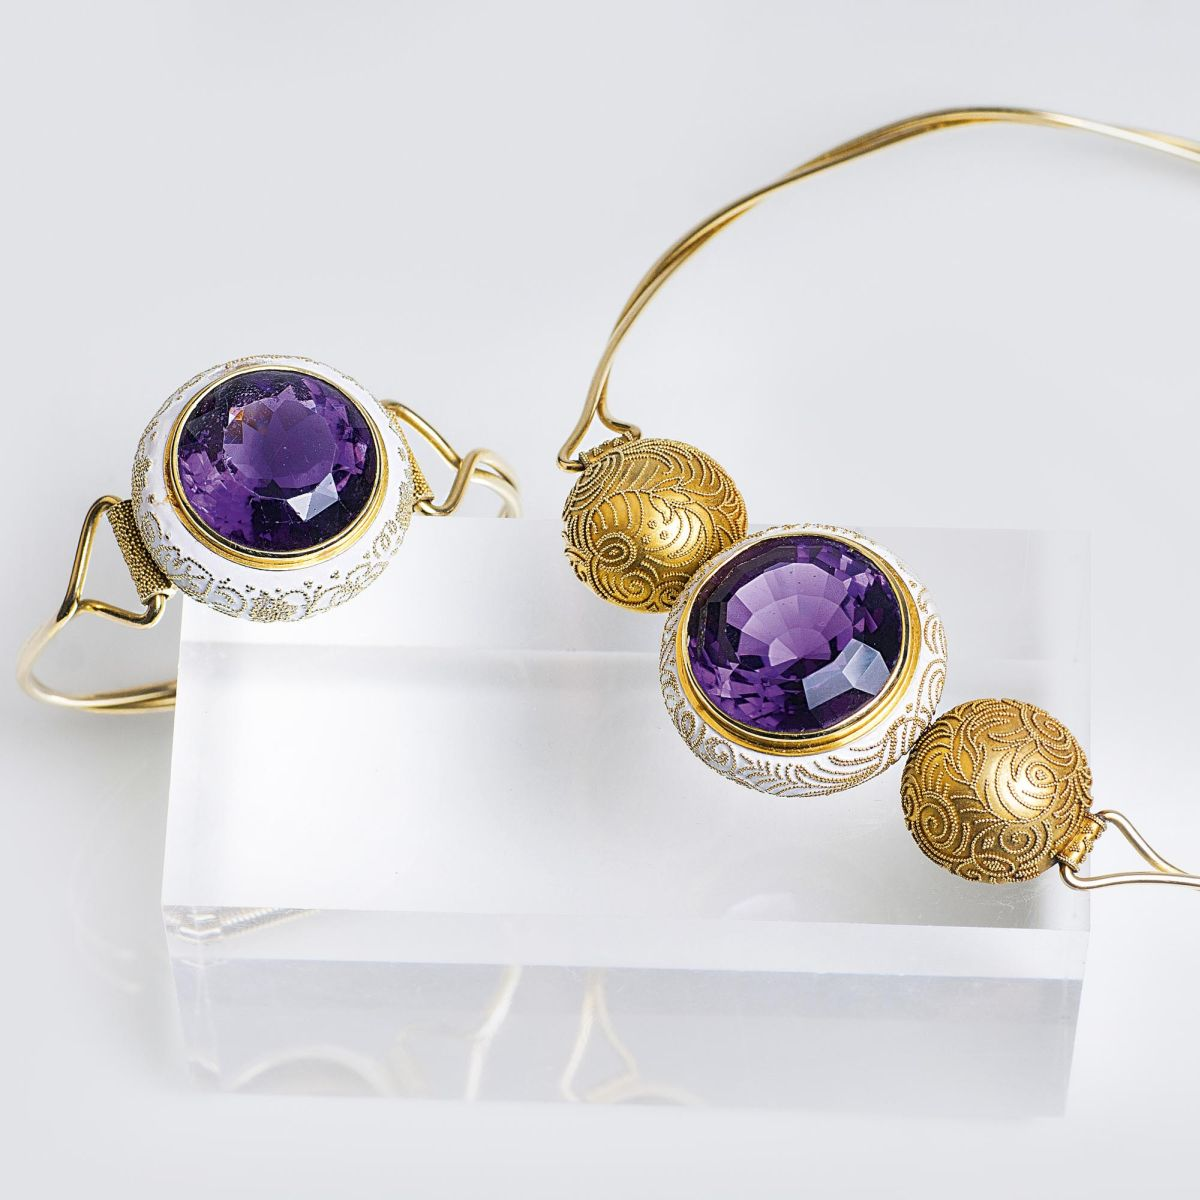 A Vintage Amethyst Gold Necklace and Bangle Bracelet with Filigree Ornaments